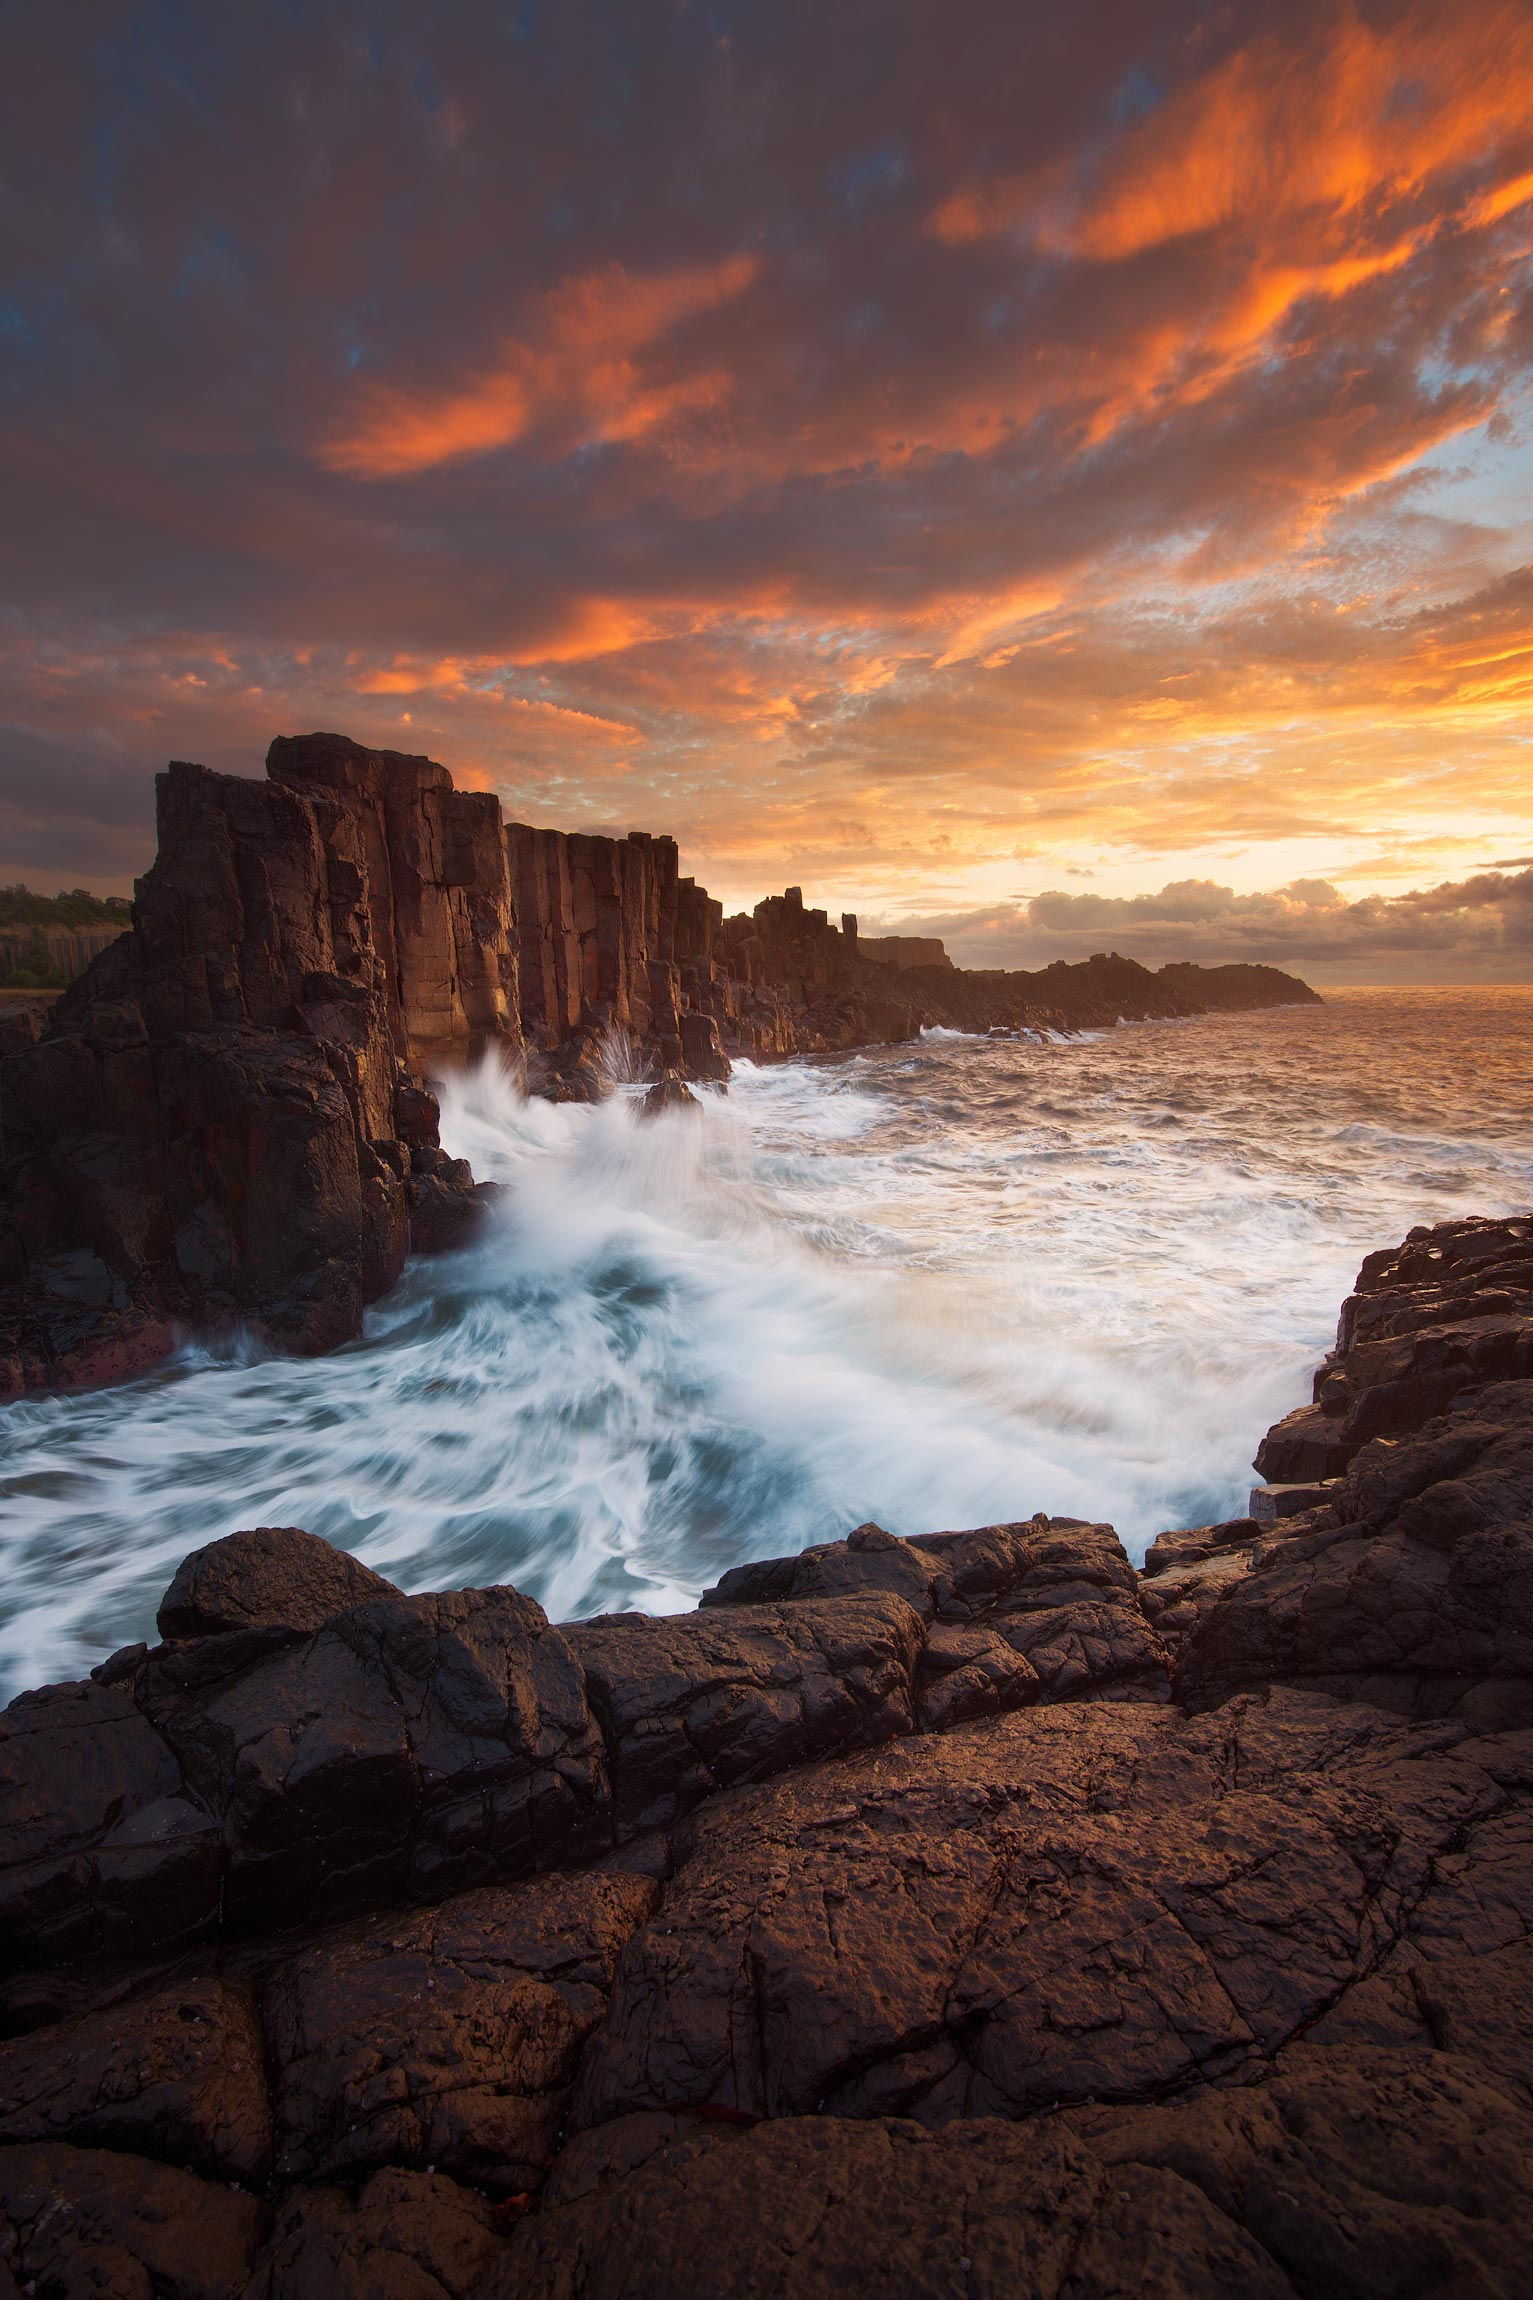 Bombo at sunrise